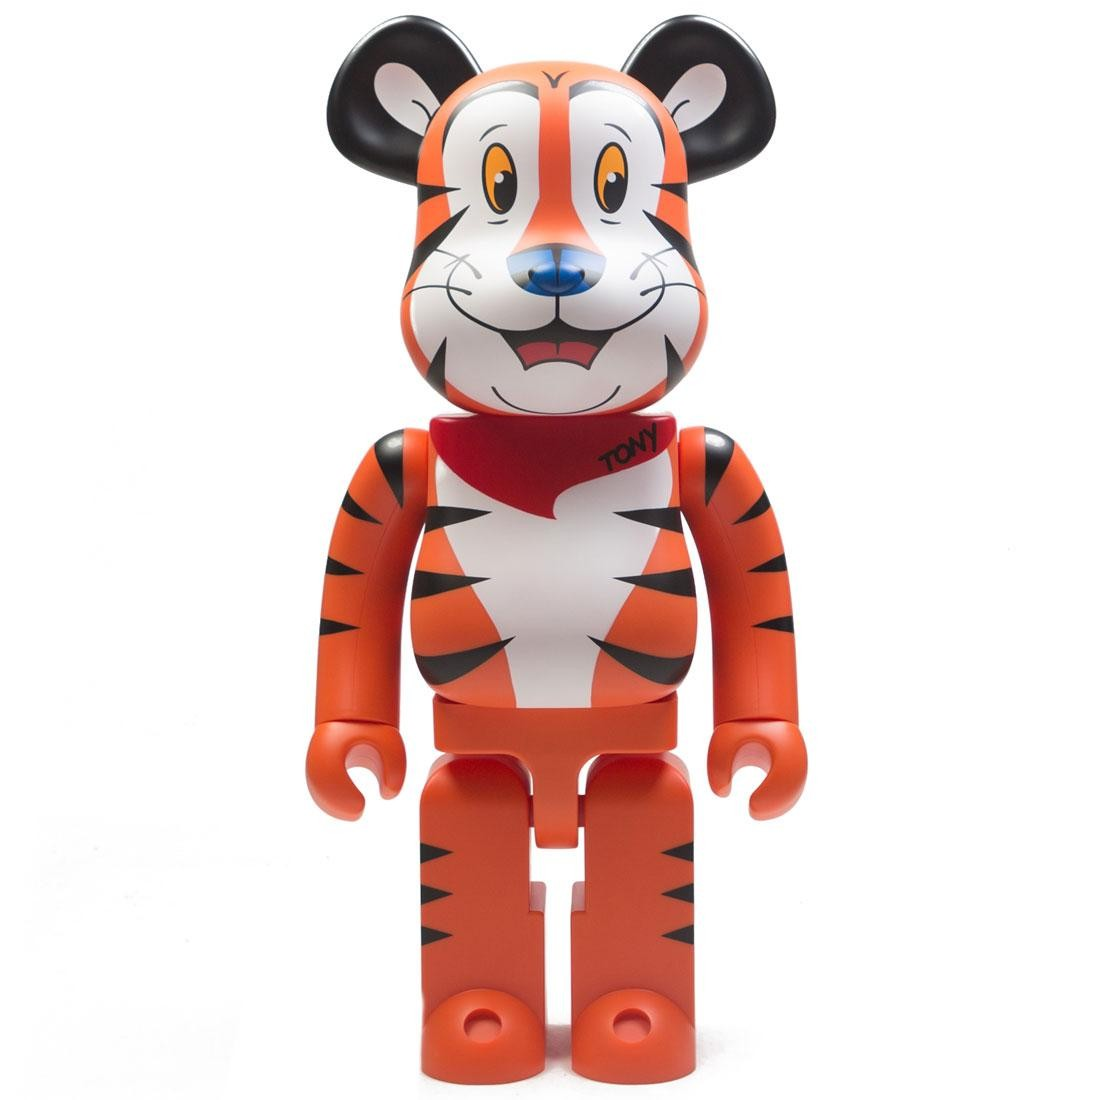 Medicom Kellogg's Tony The Tiger 1000% Bearbrick Figure (orange)